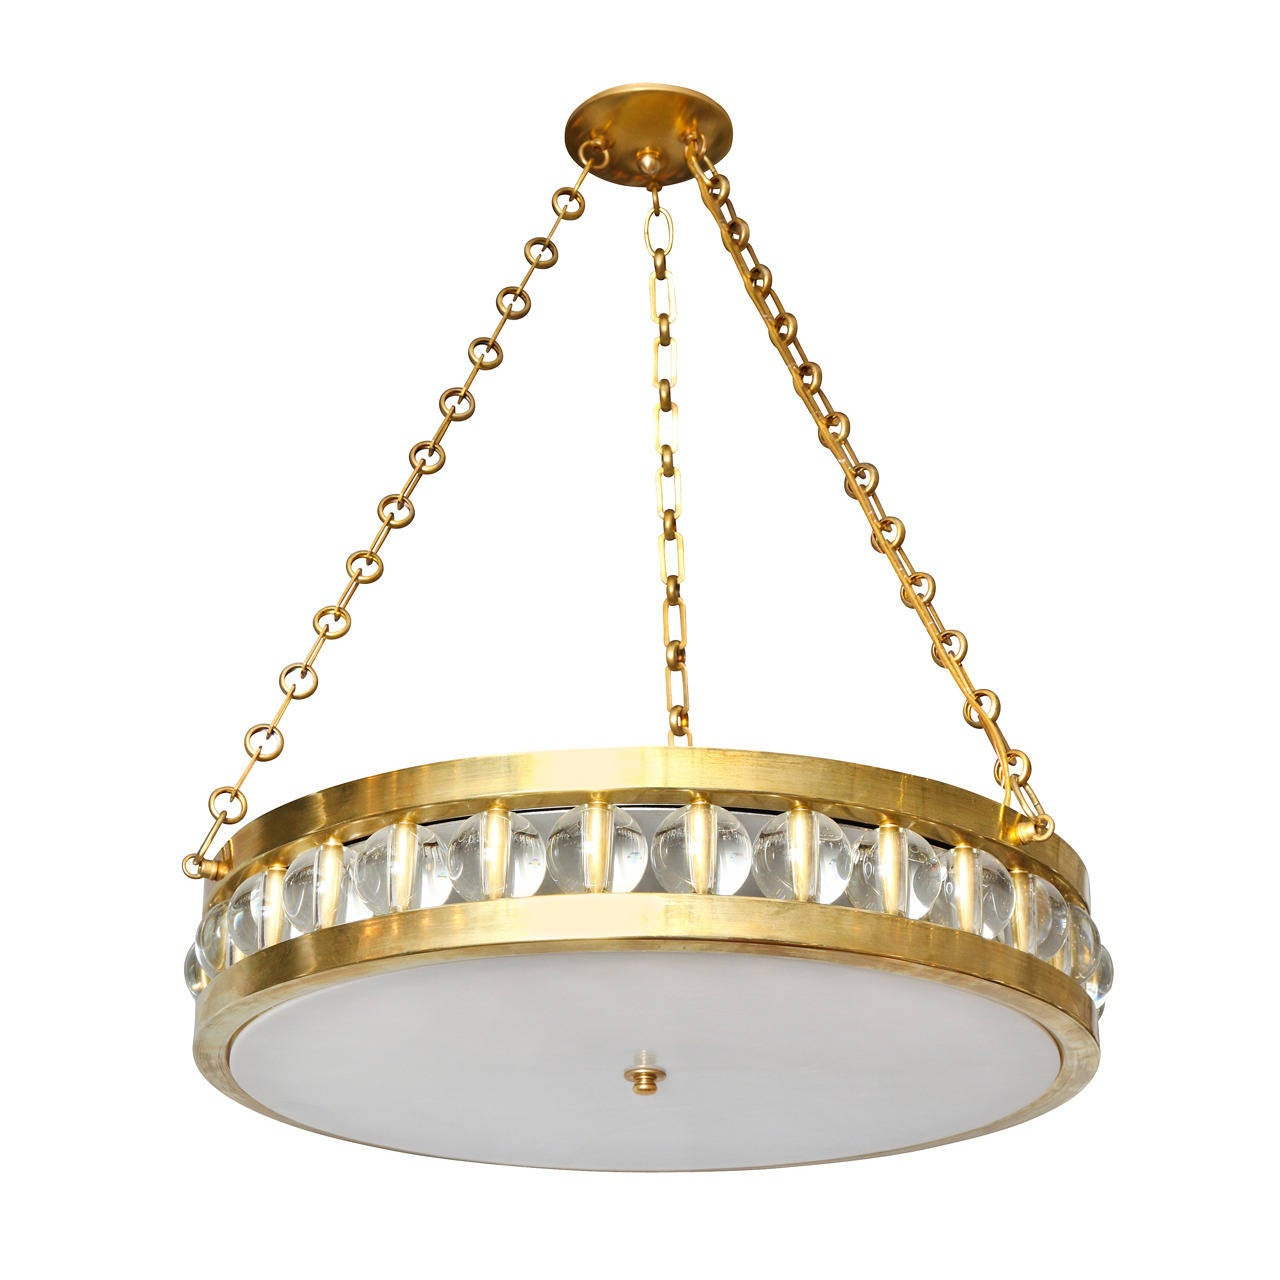 "A 24"" Tambour Pendant Fixture with Chain"